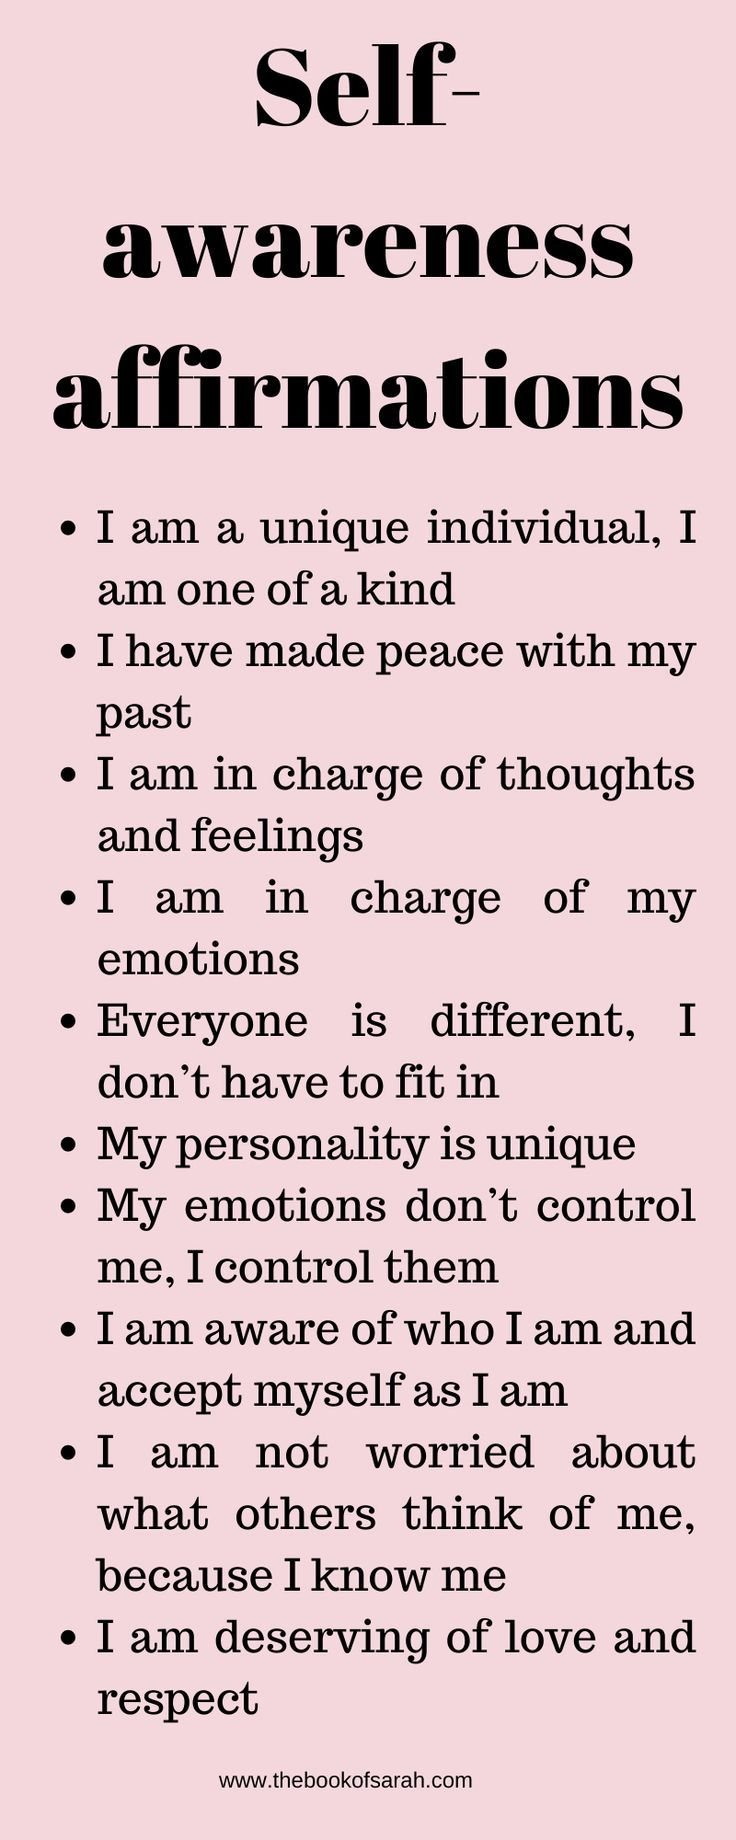 Daily Affirmations To Help You Through Tough Times The Book Of Sarah Self Awareness Quotes Self Esteem Affirmations Positive Self Affirmations